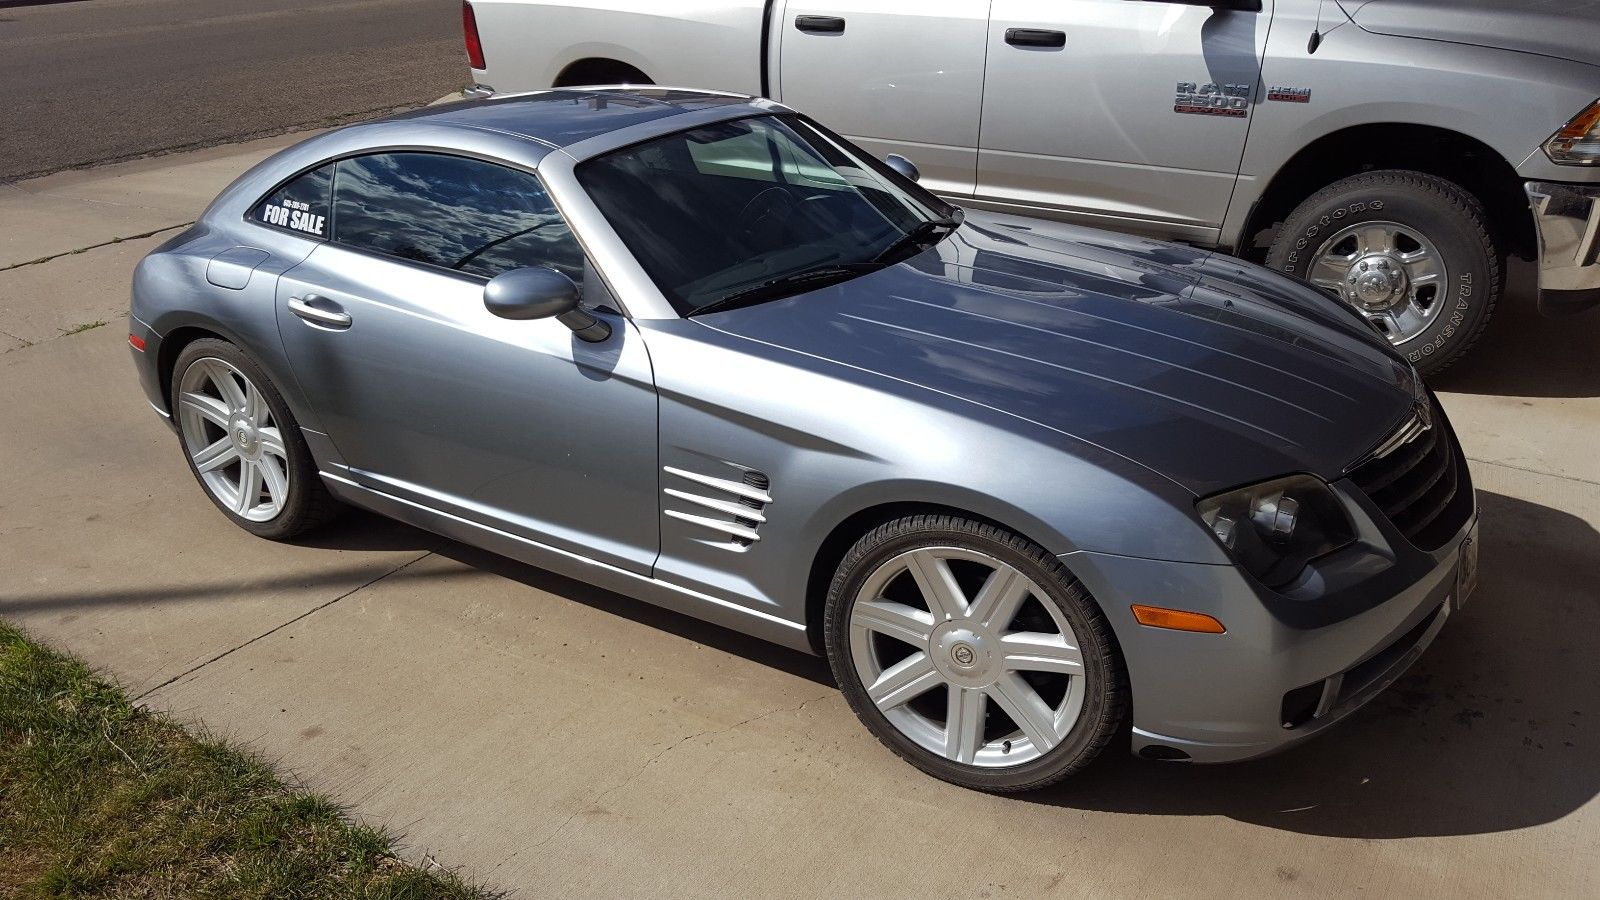 For Sale: 2004 Chrysler Crossfire with a 5.3 L LSx V8 ...